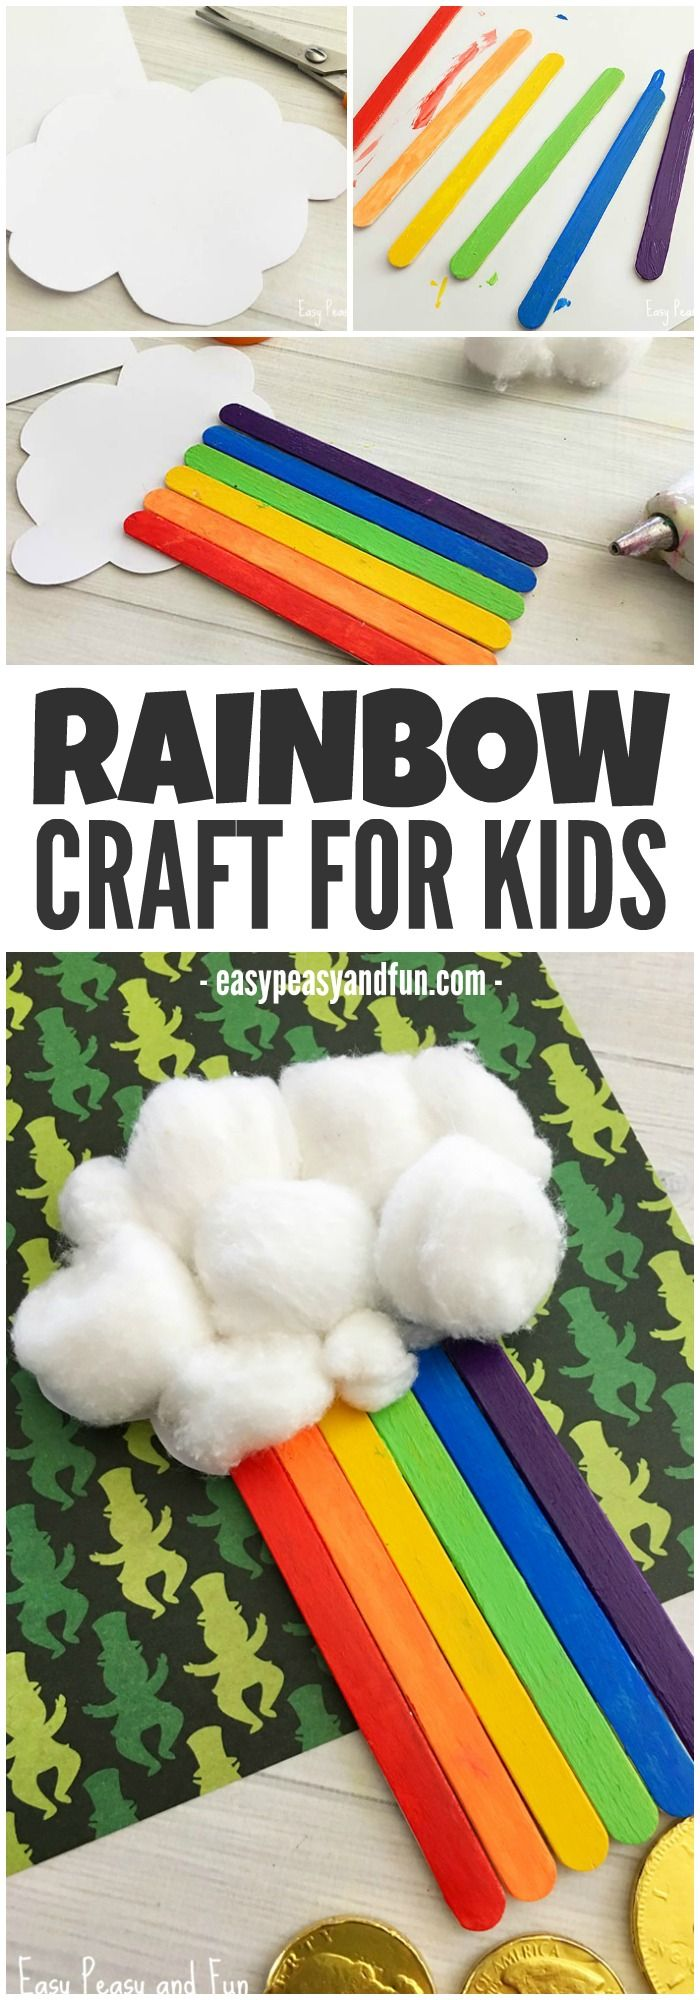 Craft Sticks Rainbow Craft #craftsforkids